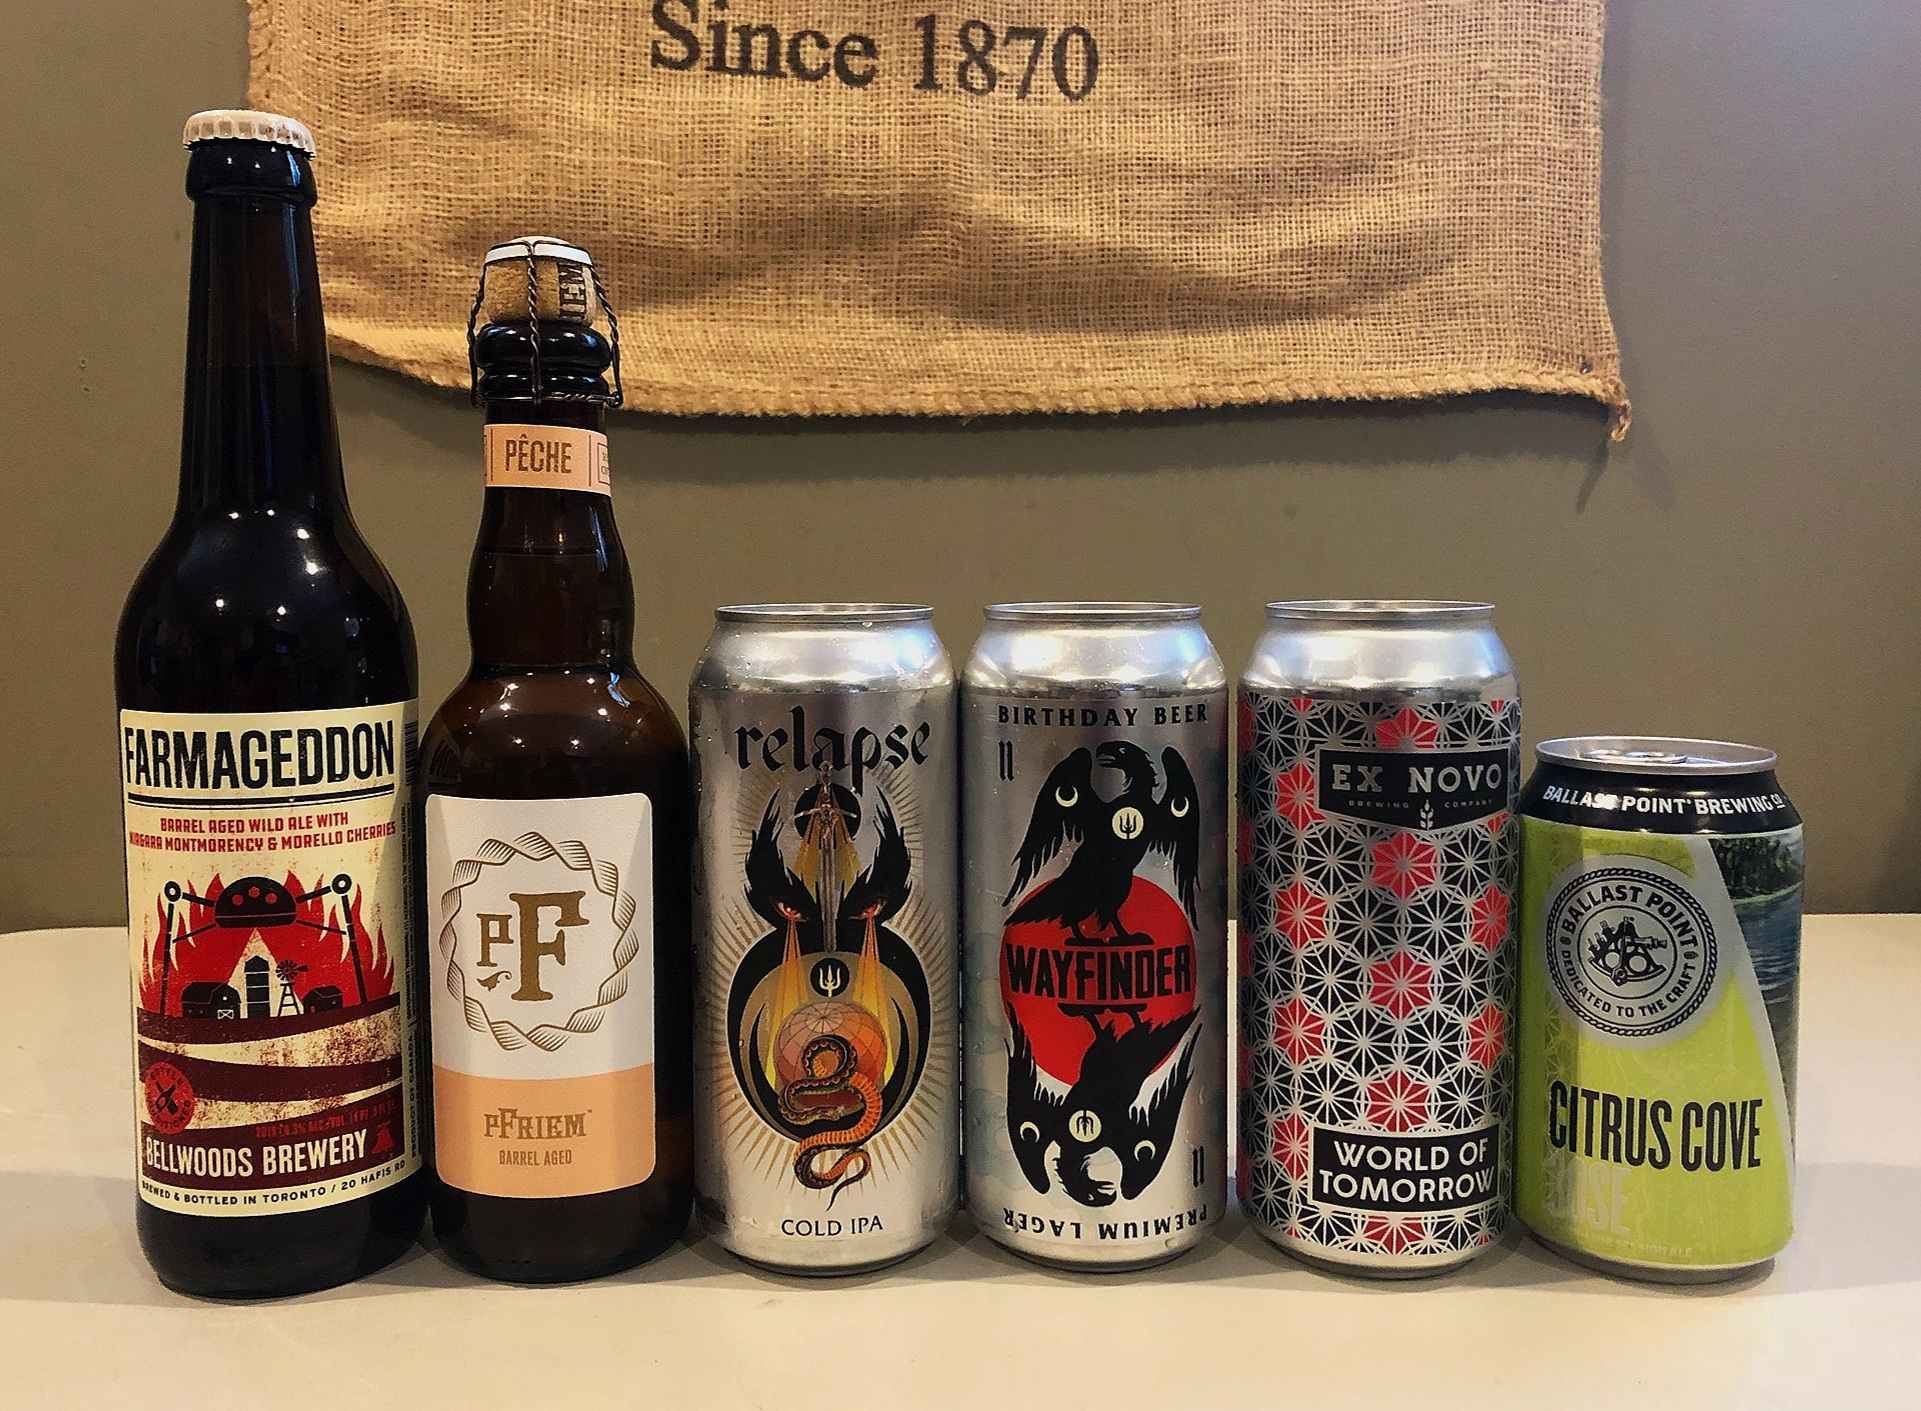 CLICK ON THE LINKS HERE TO FIND OUT MORE ABOUT THESE FEATURED BREWERIES:    Bellwoods   -   pFriem   -   Wayfinder   -   Ex Novo   -   Ballast Point